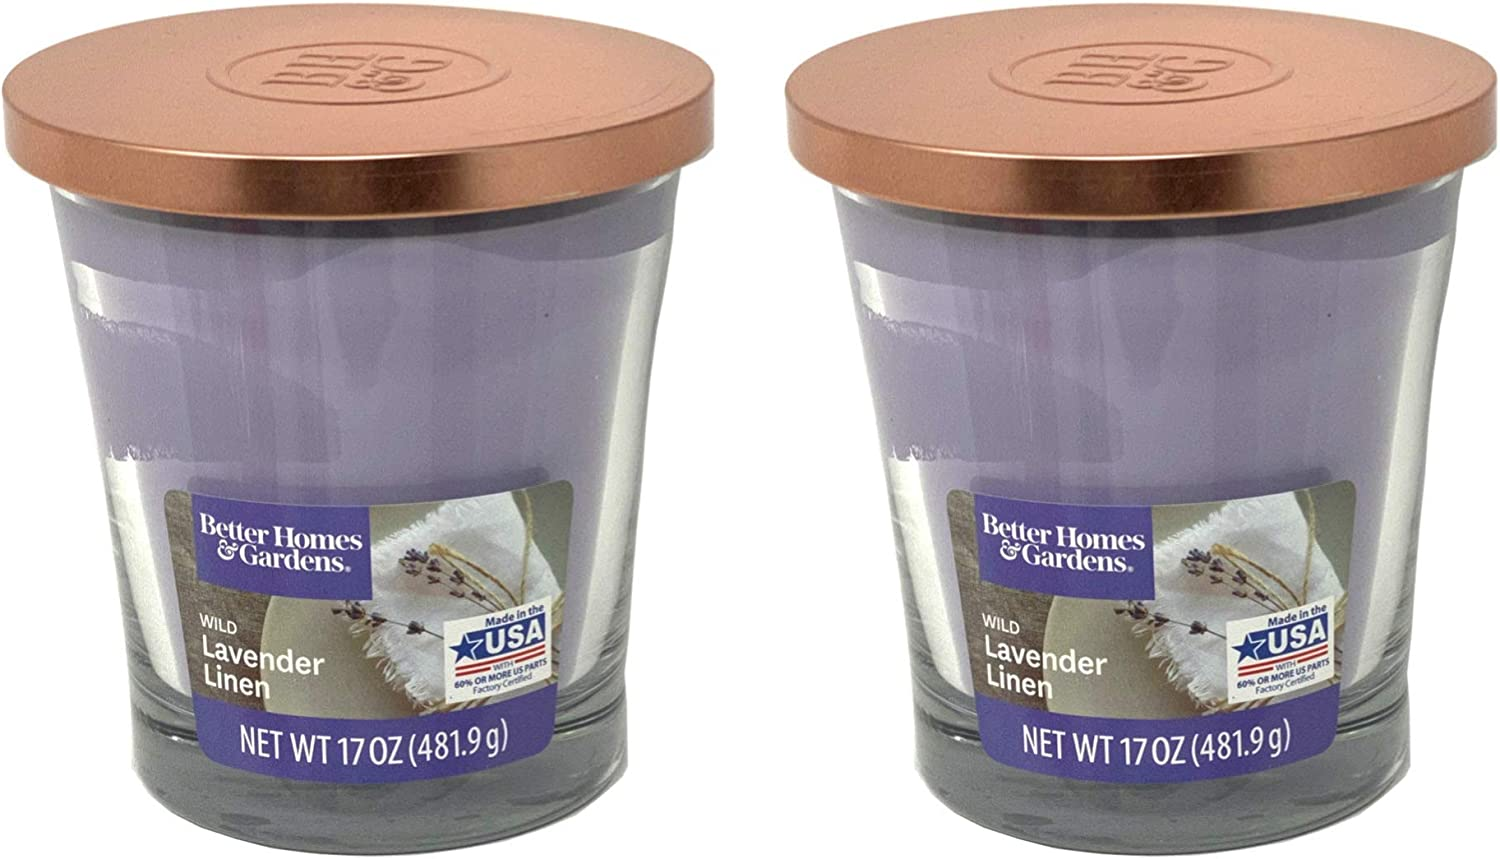 Better Homes Gardens 17oz Scented Candle, Wild Lavender Linen 2-Pack